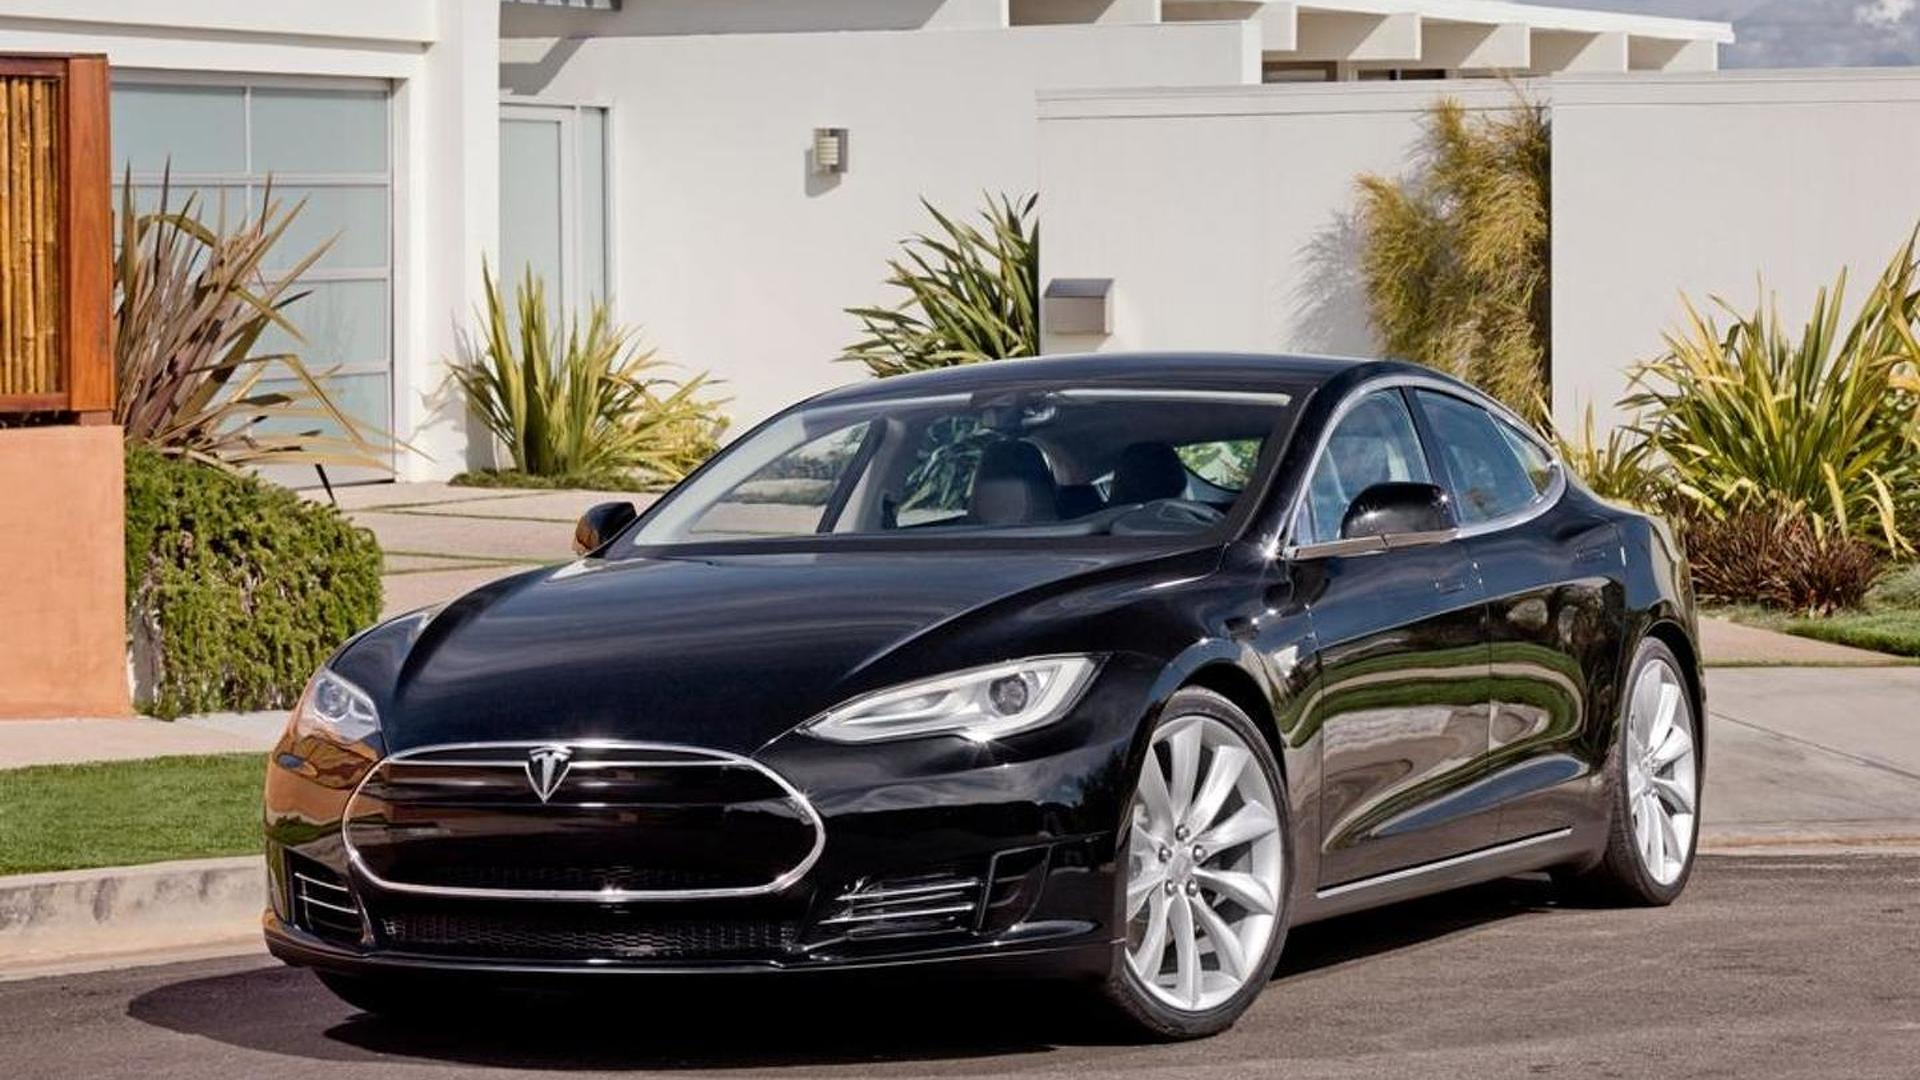 Tesla Model S officially rated at 89 MPGe combined